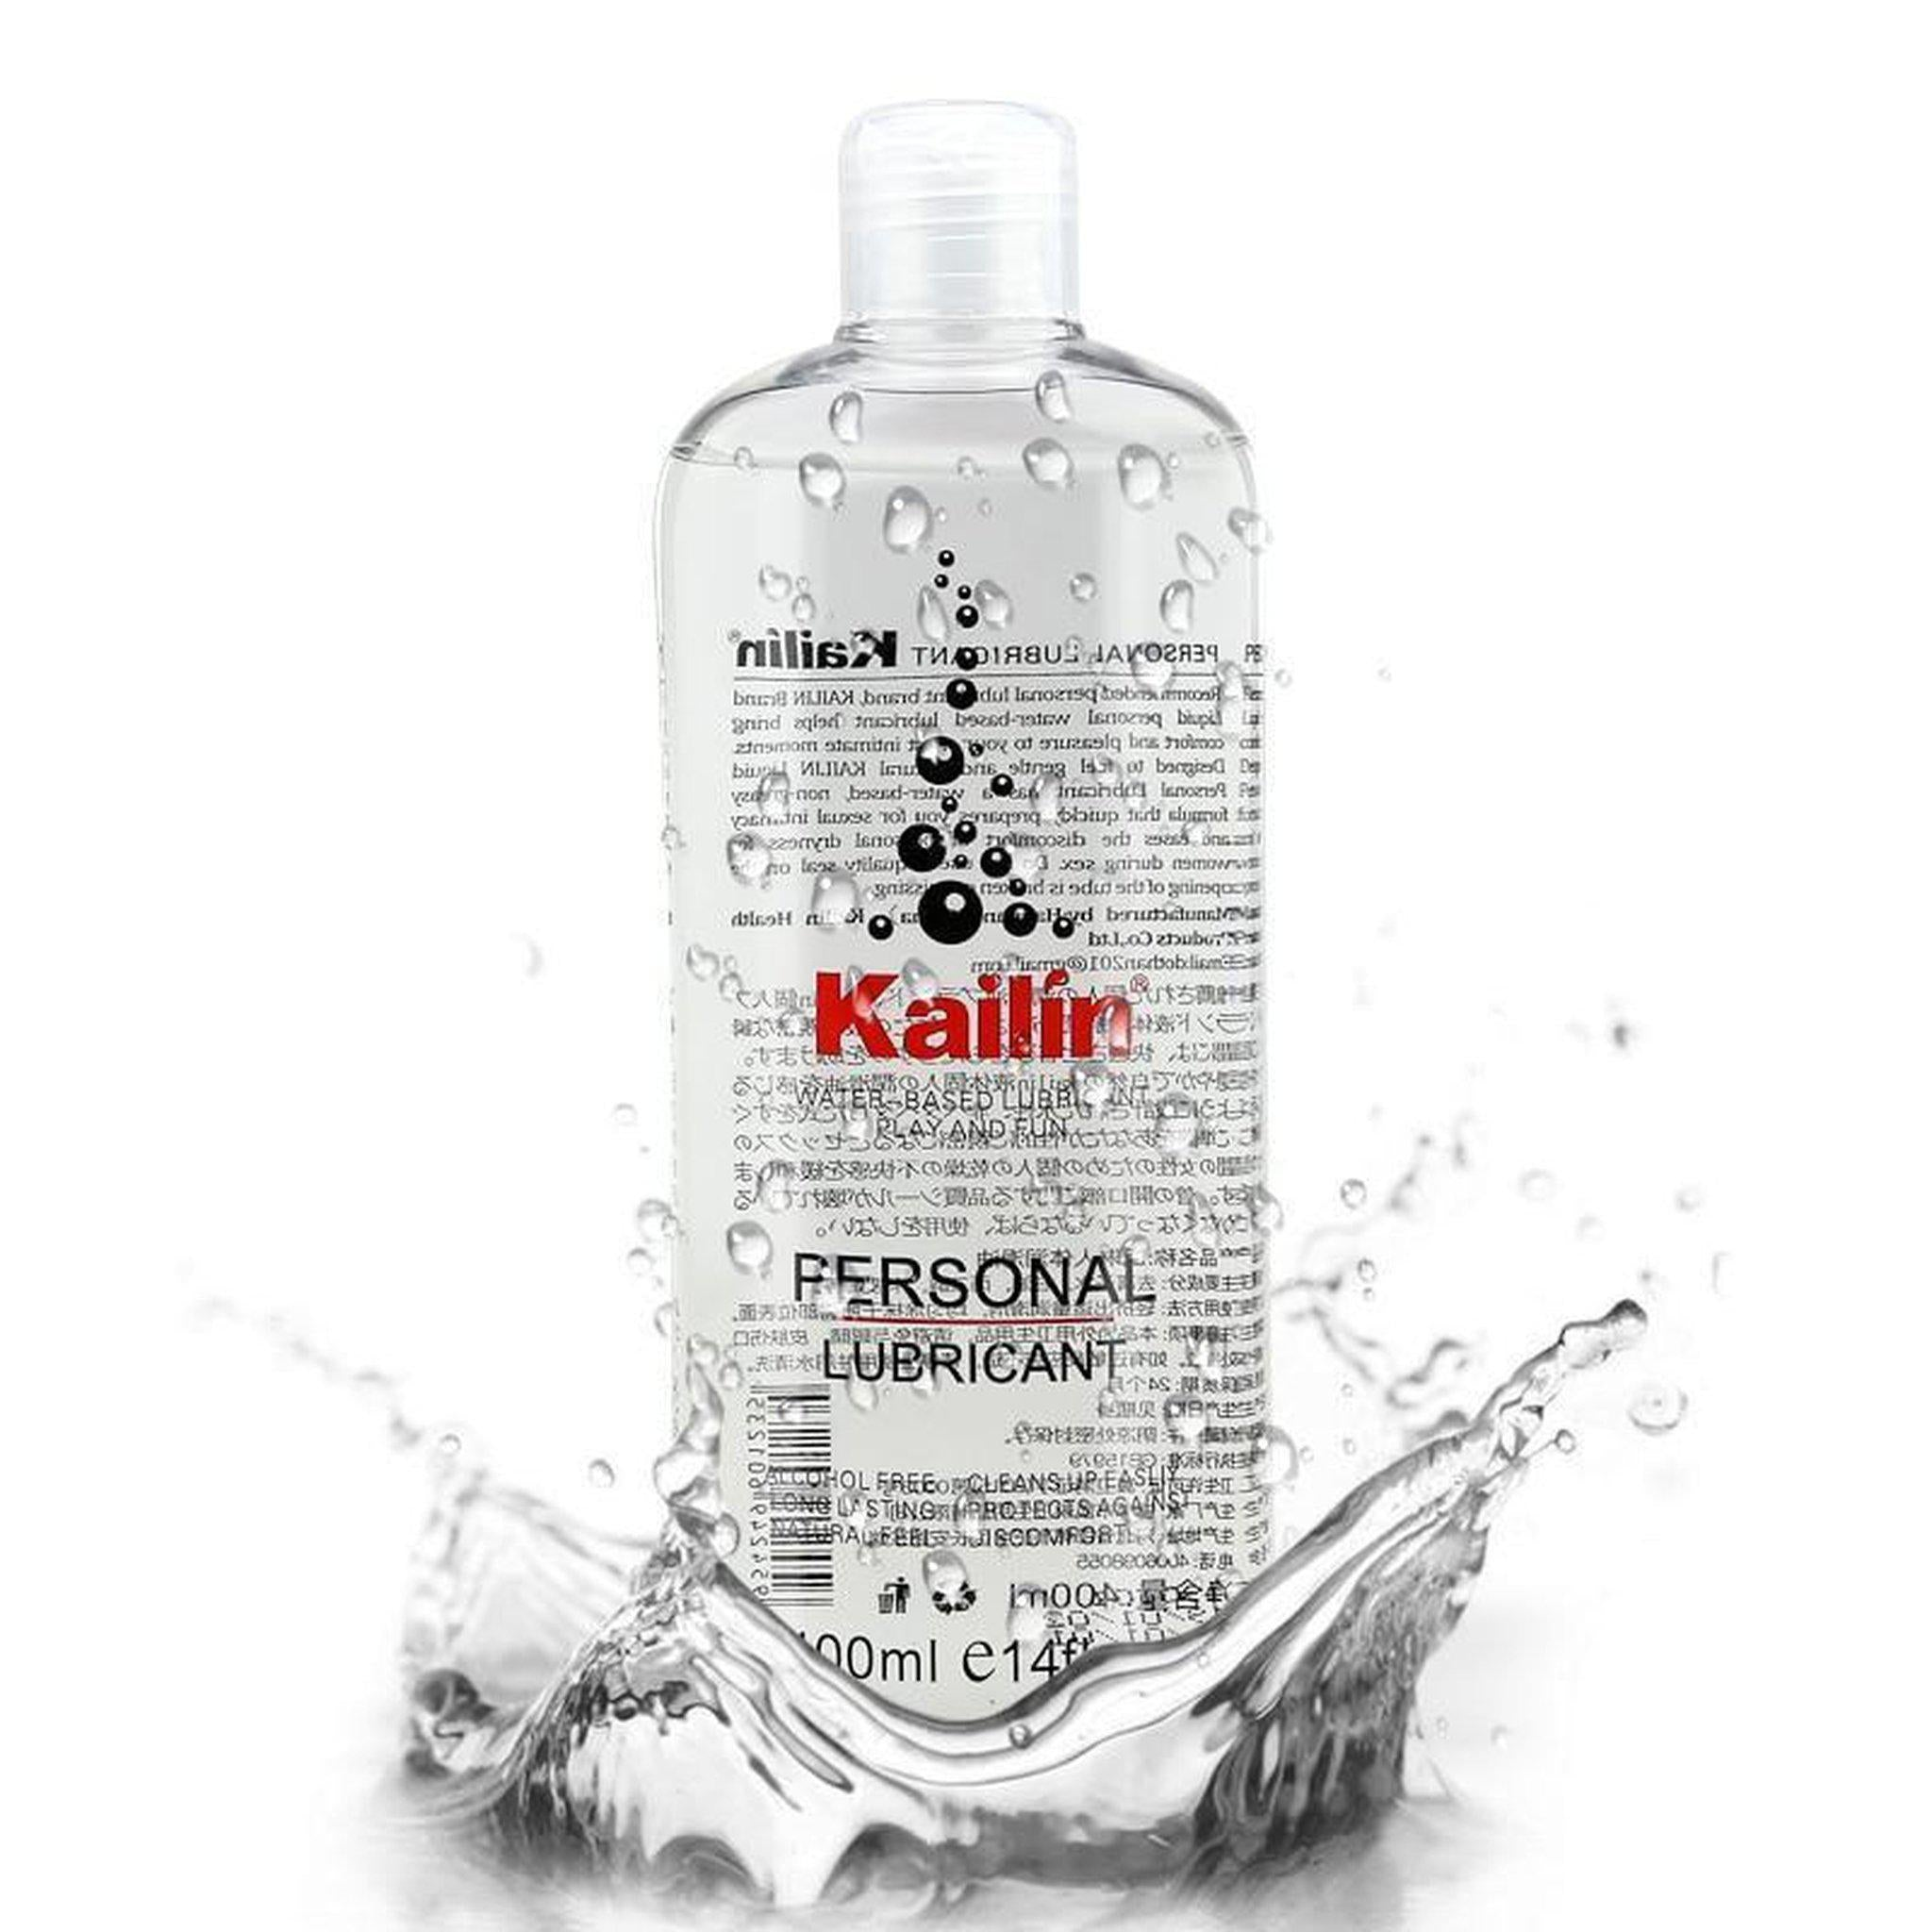 Kailin Silky Lubricant - 200/400ml-Good Girl xox-400ML-buy-bdsm-bondage-gear-tools-toys-online-good-girl-xox